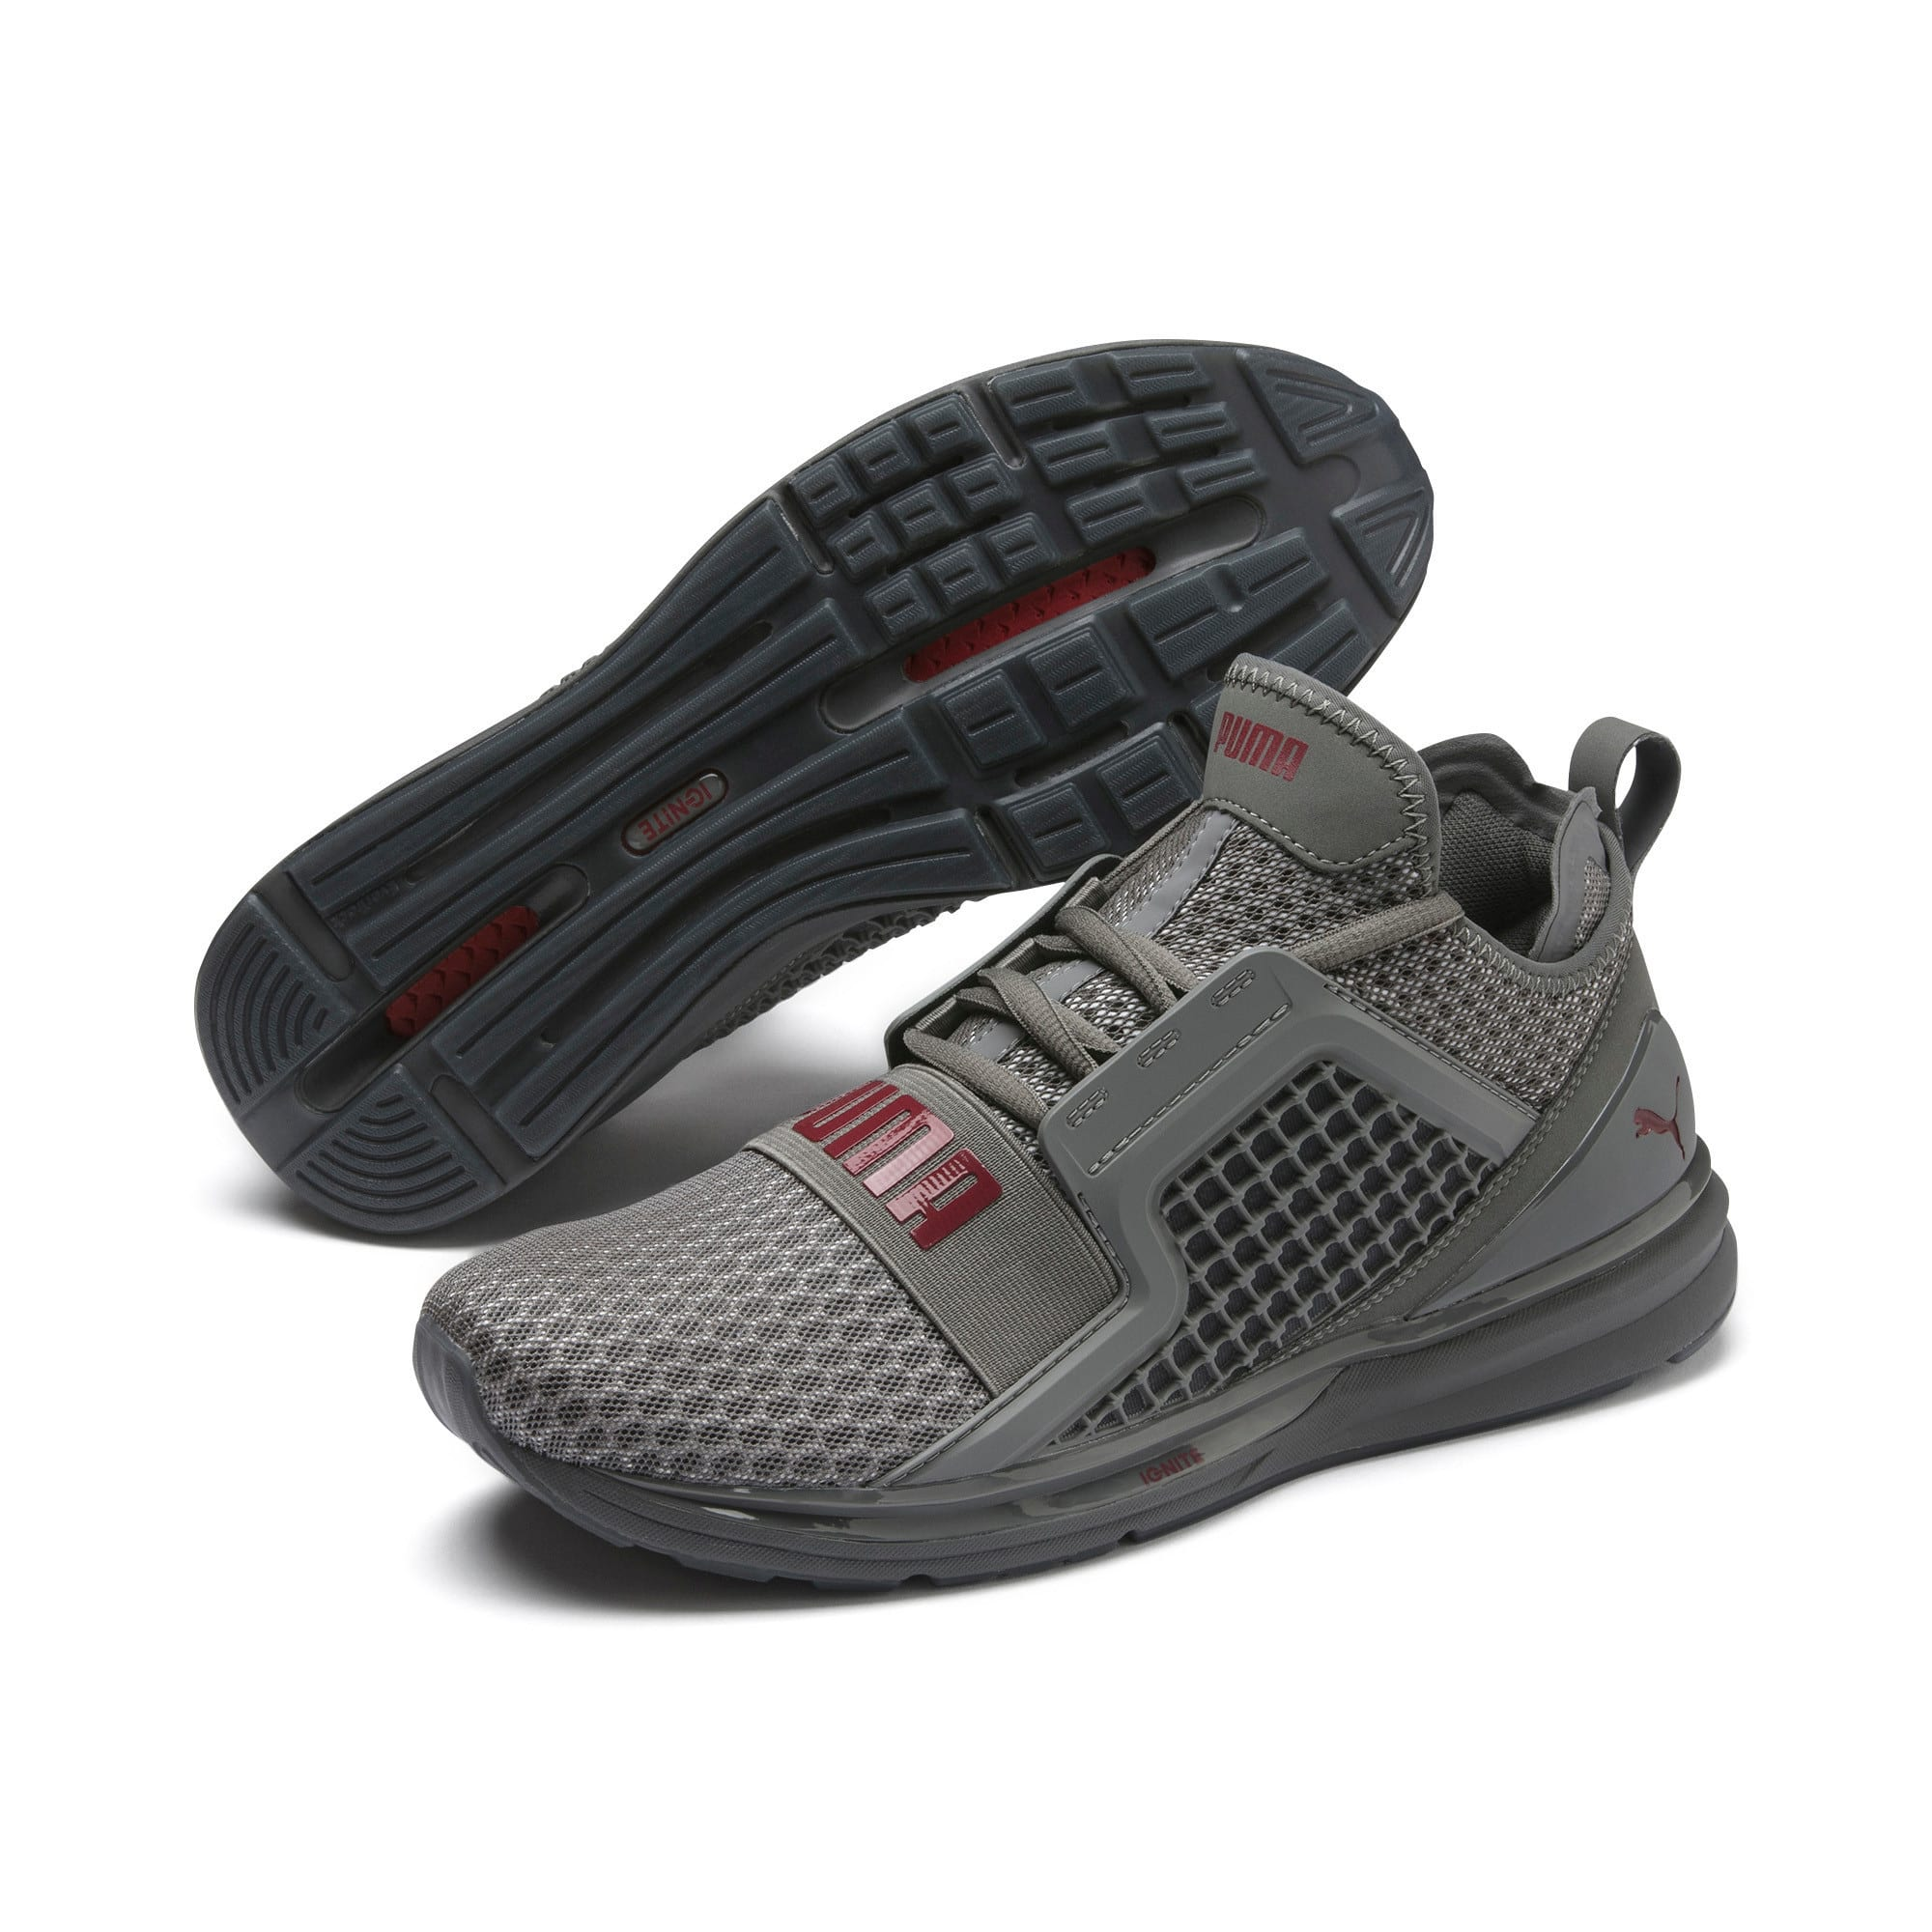 Thumbnail 8 of IGNITE Limitless Men's Running Shoes, CASTLEROCK-Rhubarb, medium-IND